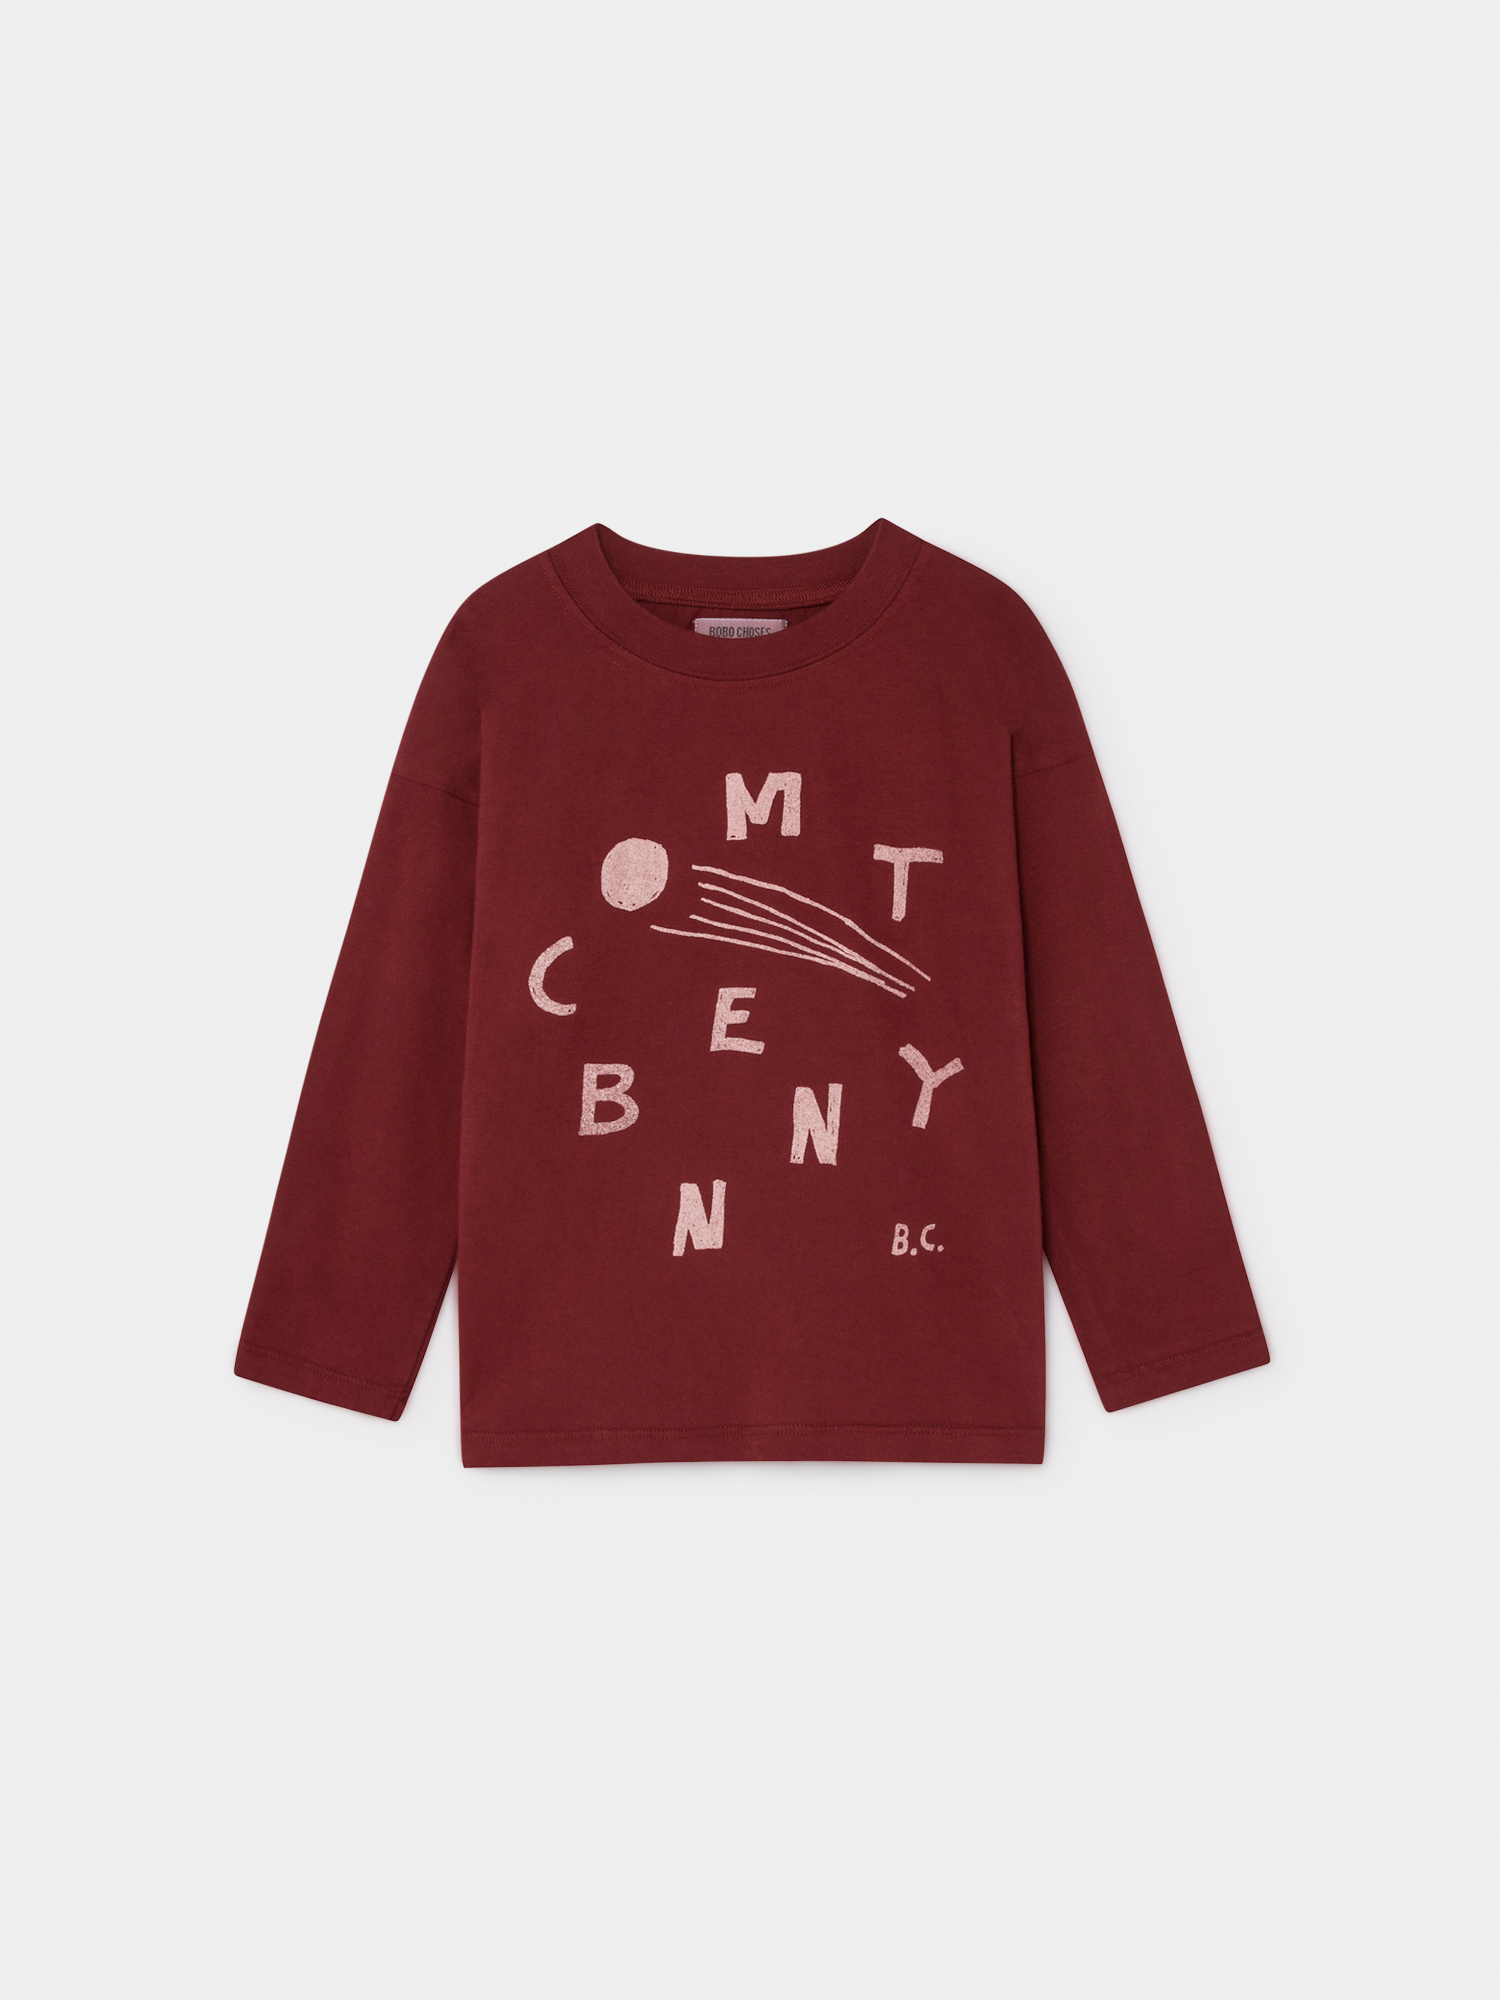 《BOBO CHOSES 2019AW》Comet Benny long sleeve T-shirt / 2-9Y